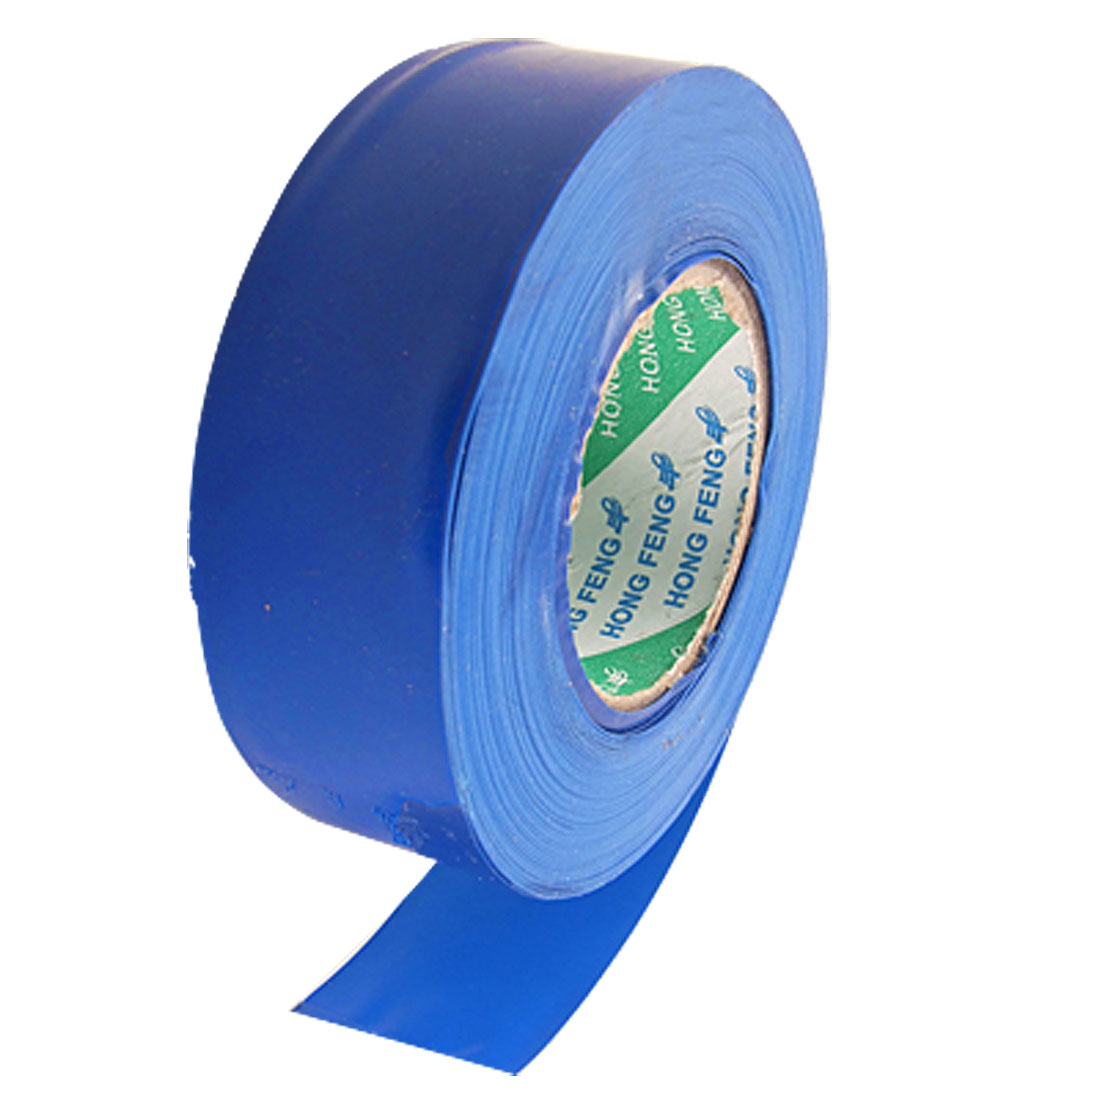 75mm x 23mm Non Adhesive PVC Insulating Tape Roll Royal Blue